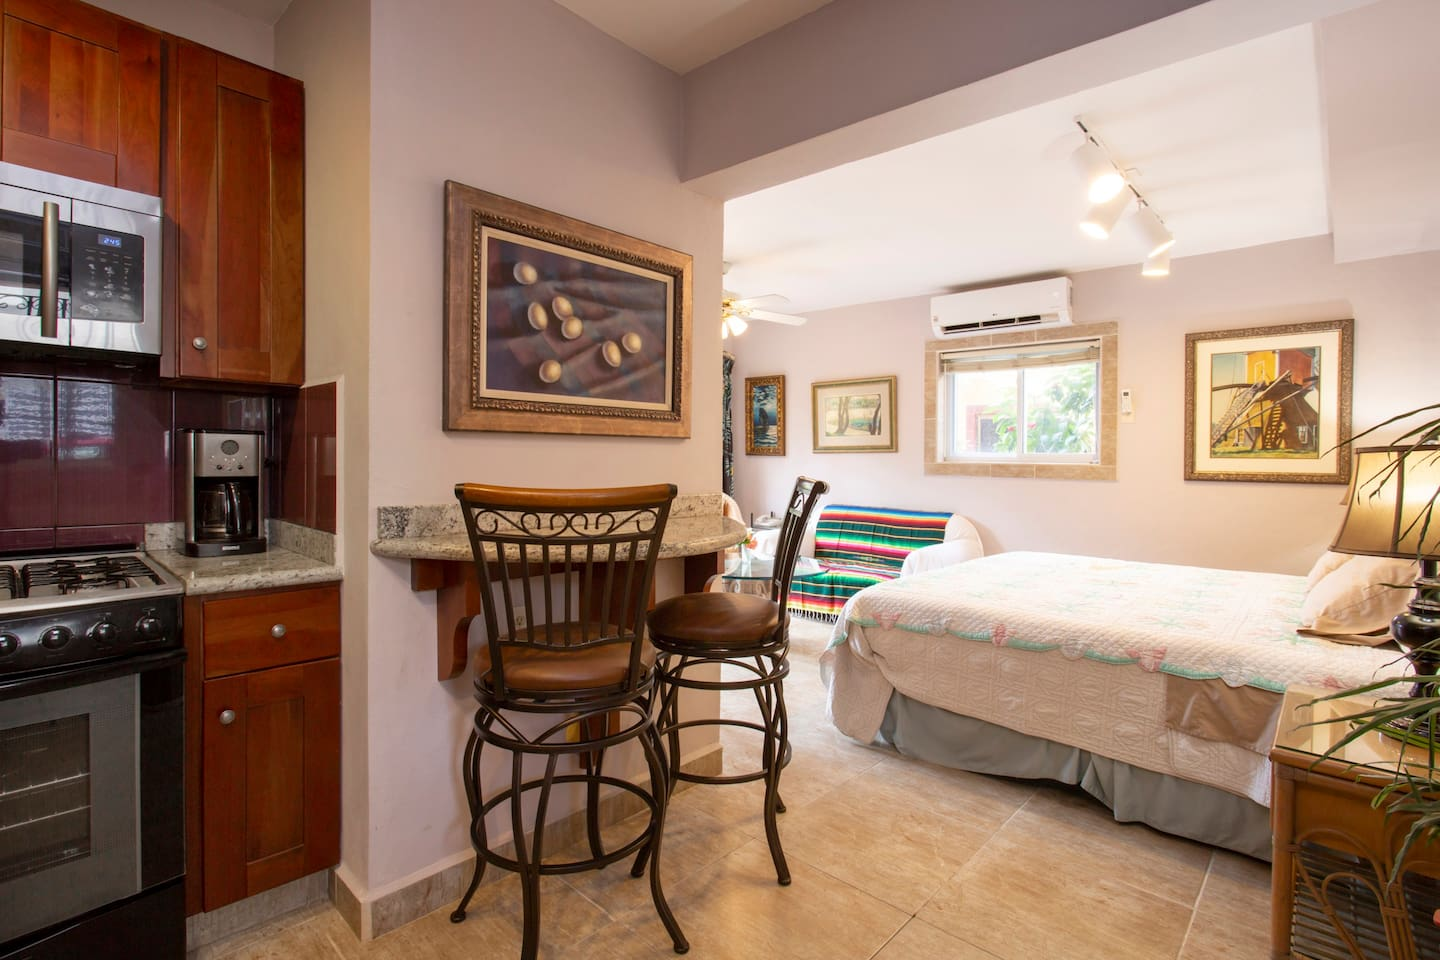 """This unit is first floor poolside. It is       Square feet and is a """"studio"""". There is no doored bedroom. The photo is from the front door entrance."""